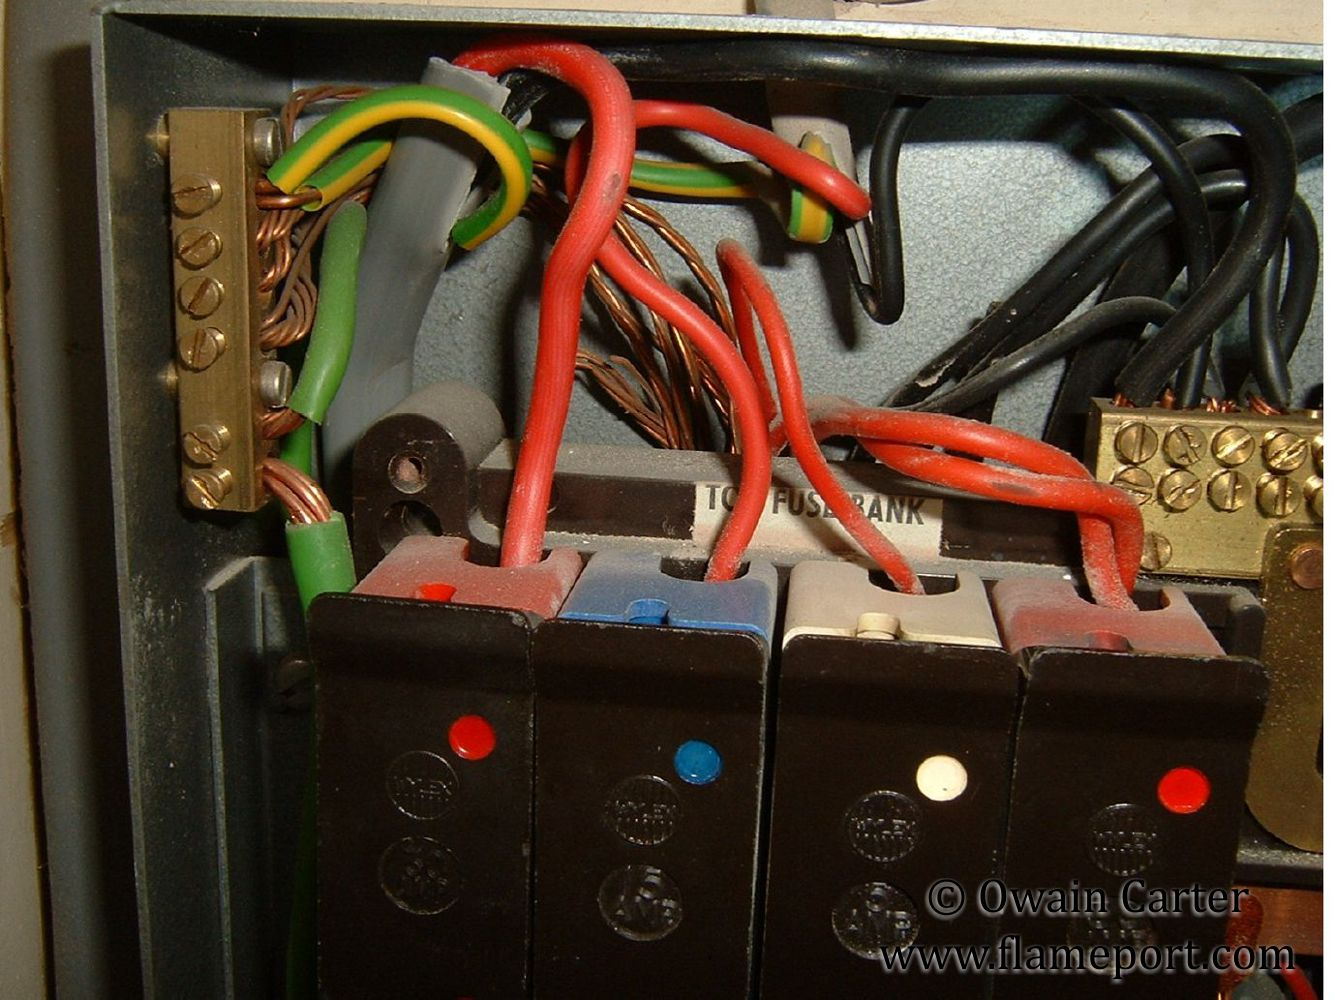 hight resolution of wylex fuse box wiring wiring diagram expert wiring a wylex fuse box wylex fuse box wiring